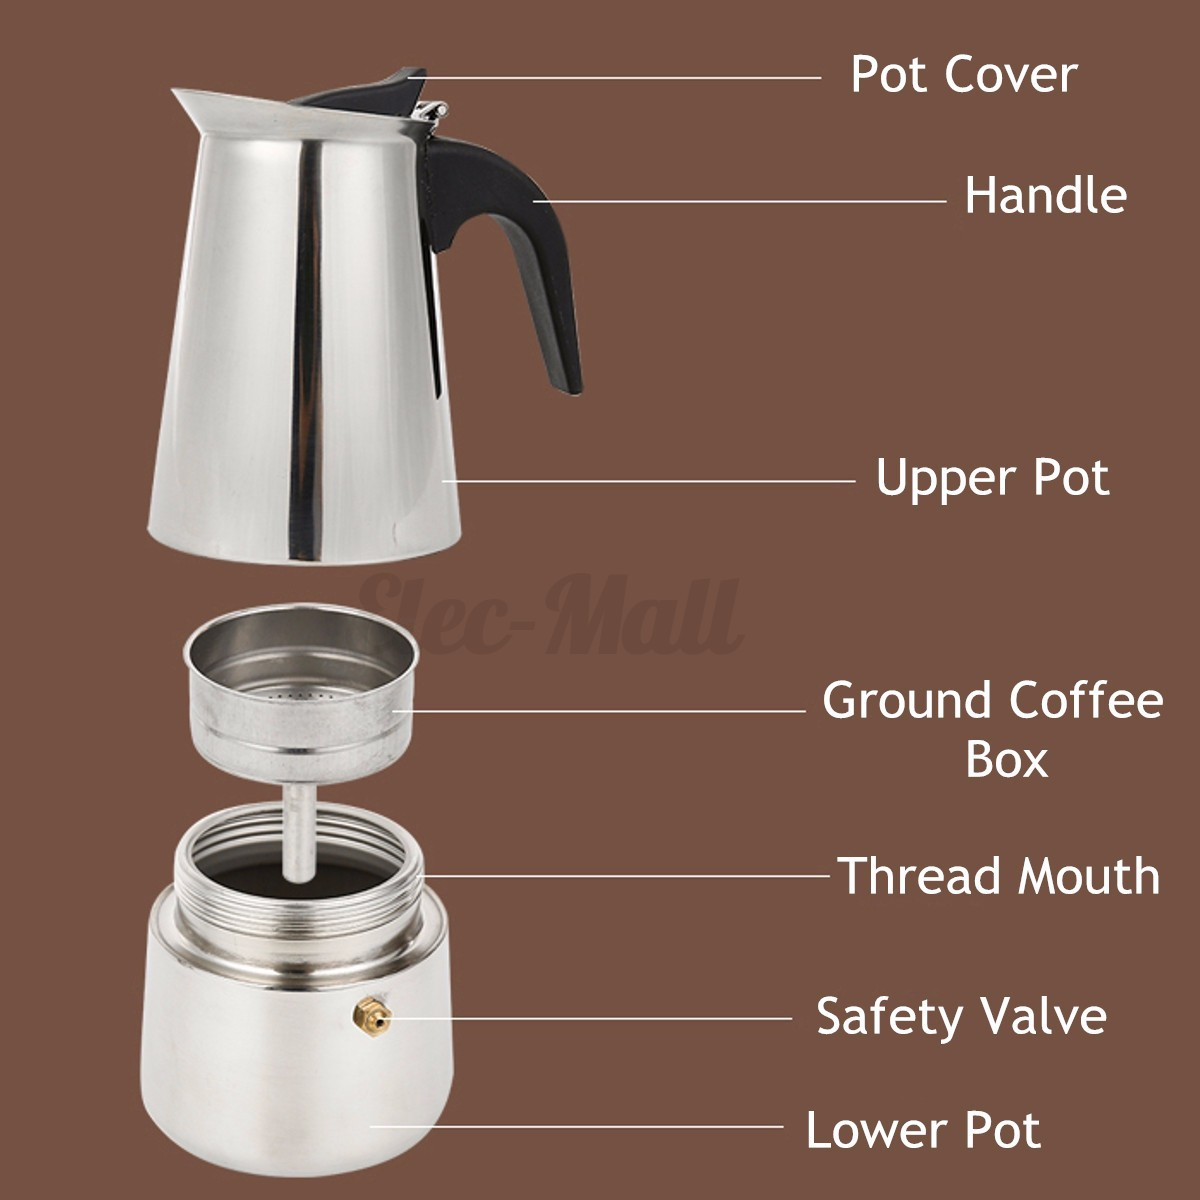 Italian Coffee Maker Stuck : Steel Italian Moka Espresso Coffee Maker Percolator Stove Top Pot 2-6 Cups eBay